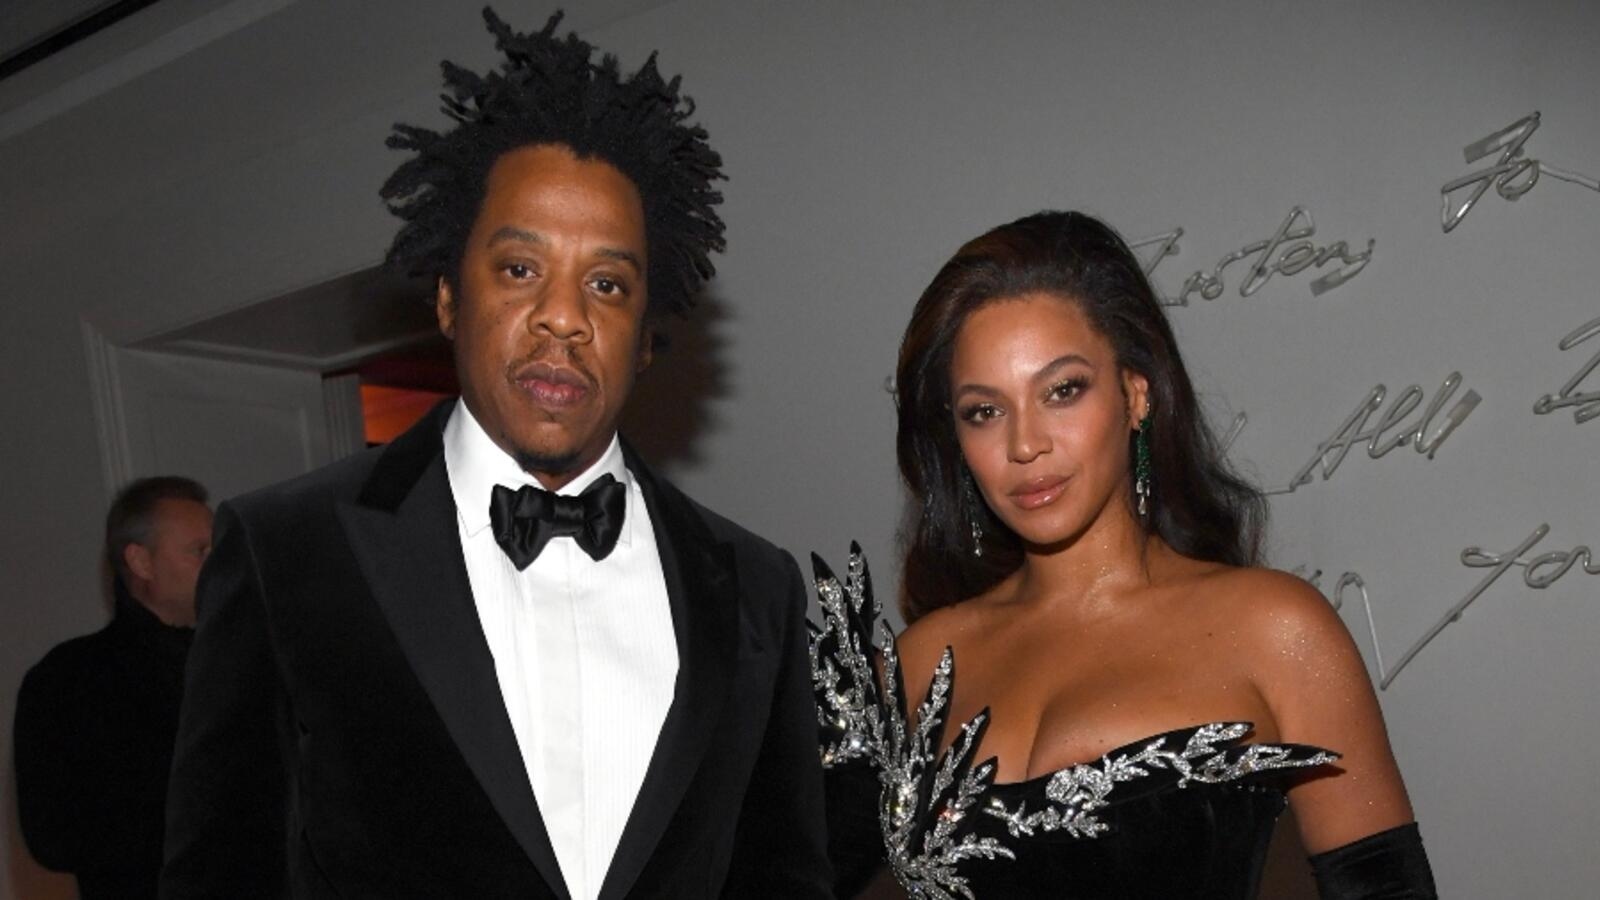 Jay-Z And Beyoncé Are Selling New Orleans Mansion That Caught On Fire